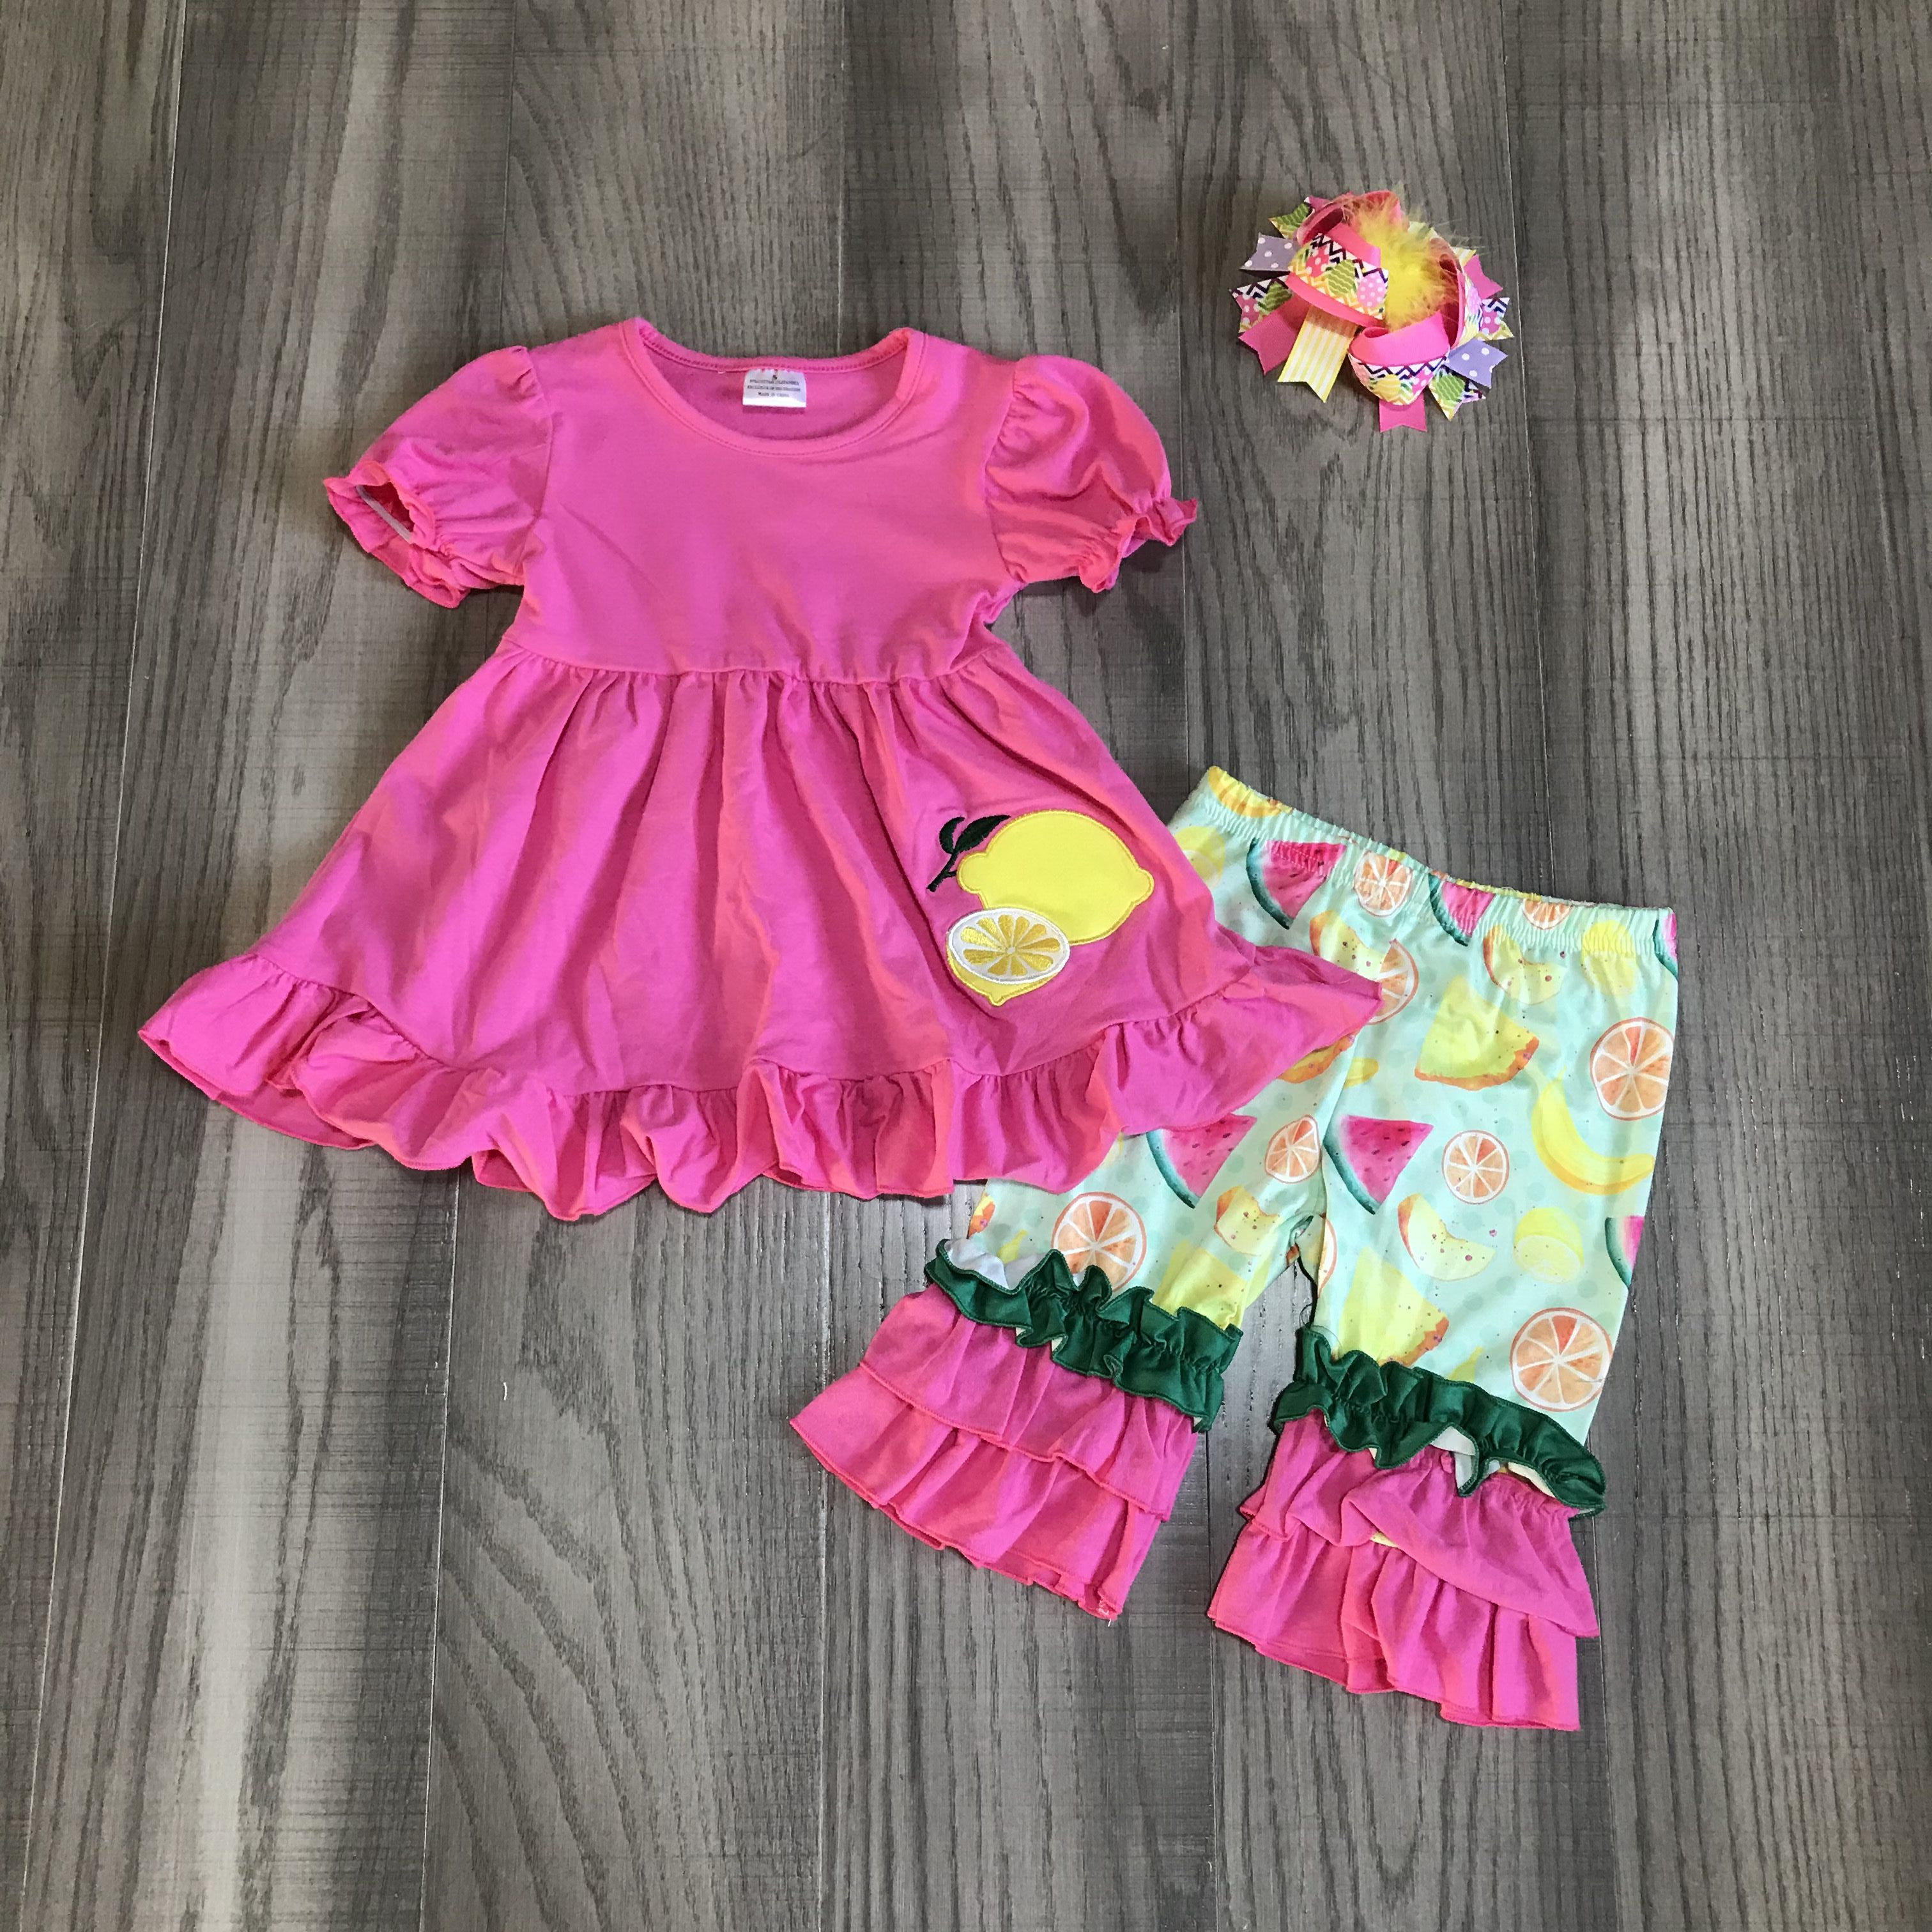 Baby Girls Summer Outfits Girls Rose Red Lemon Top With Fruit Capri Pants Girls Outfit With Bow